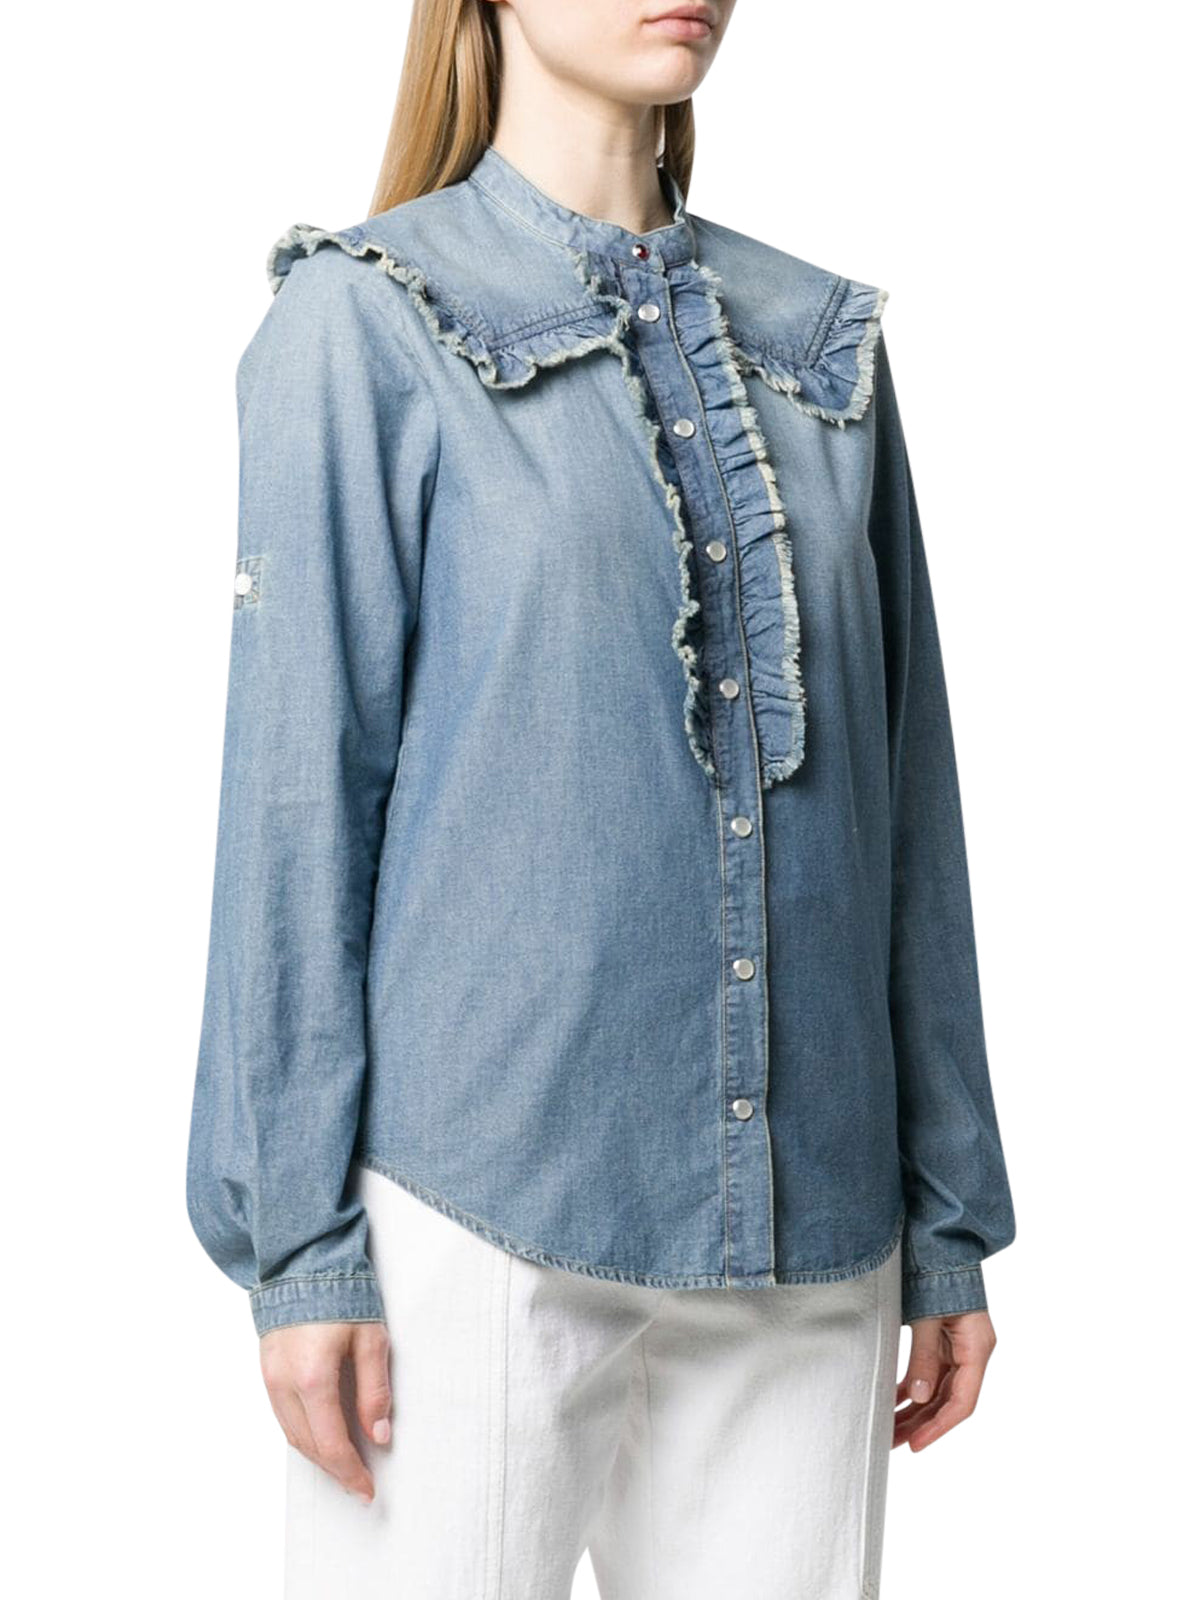 Camicia denim con ruches